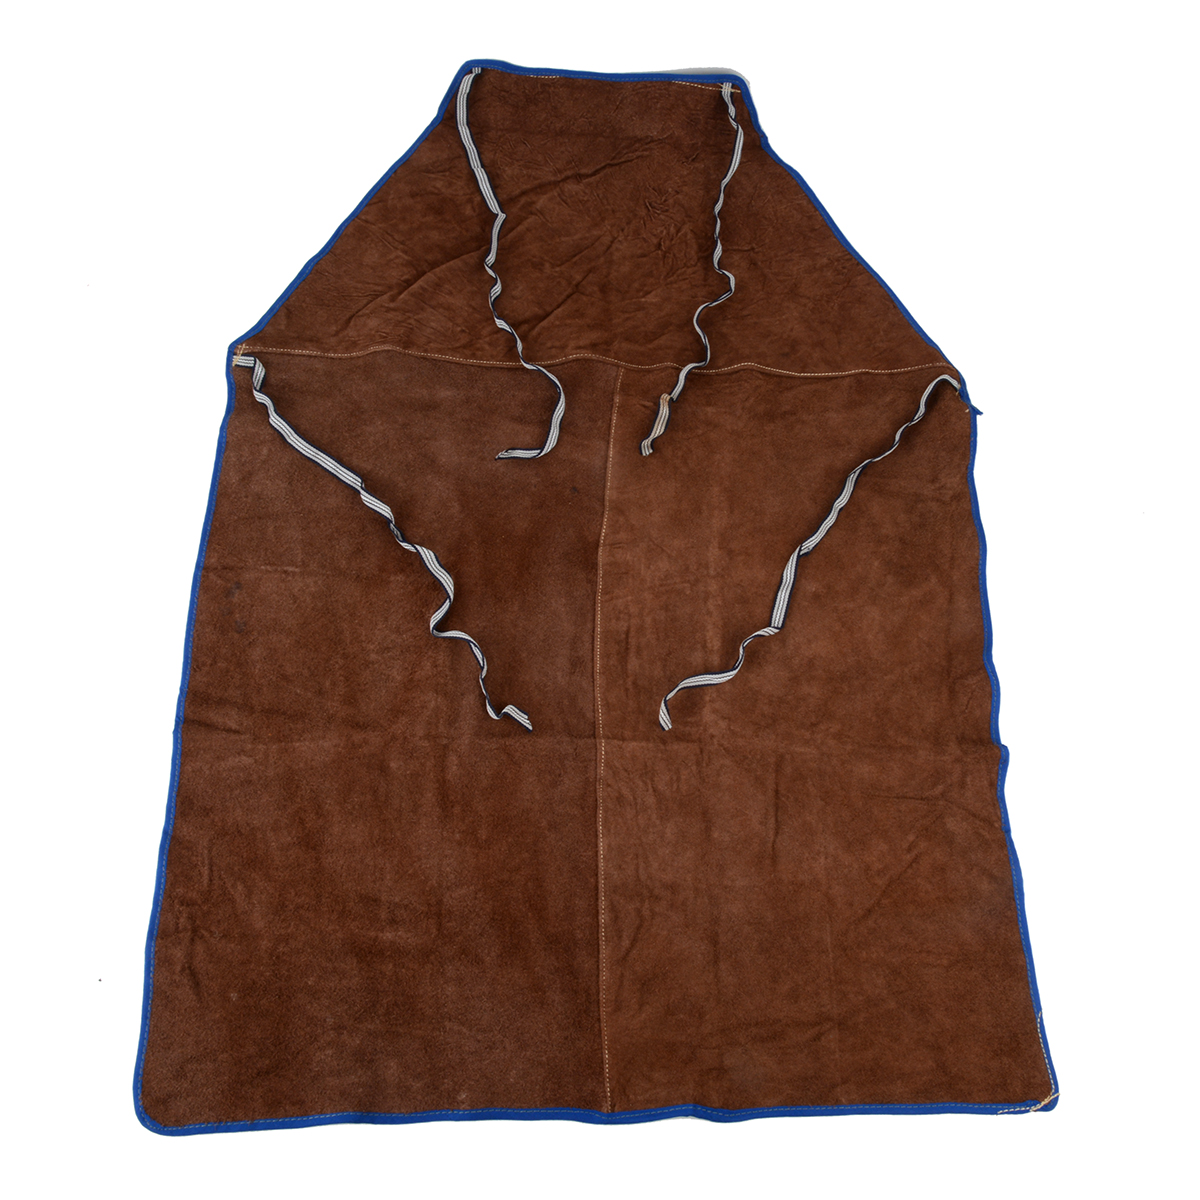 Durable Welding Apron Welder Heat Insulation Protection Leather Apron Safety Workwear Welding Equipment 60cm*90cm